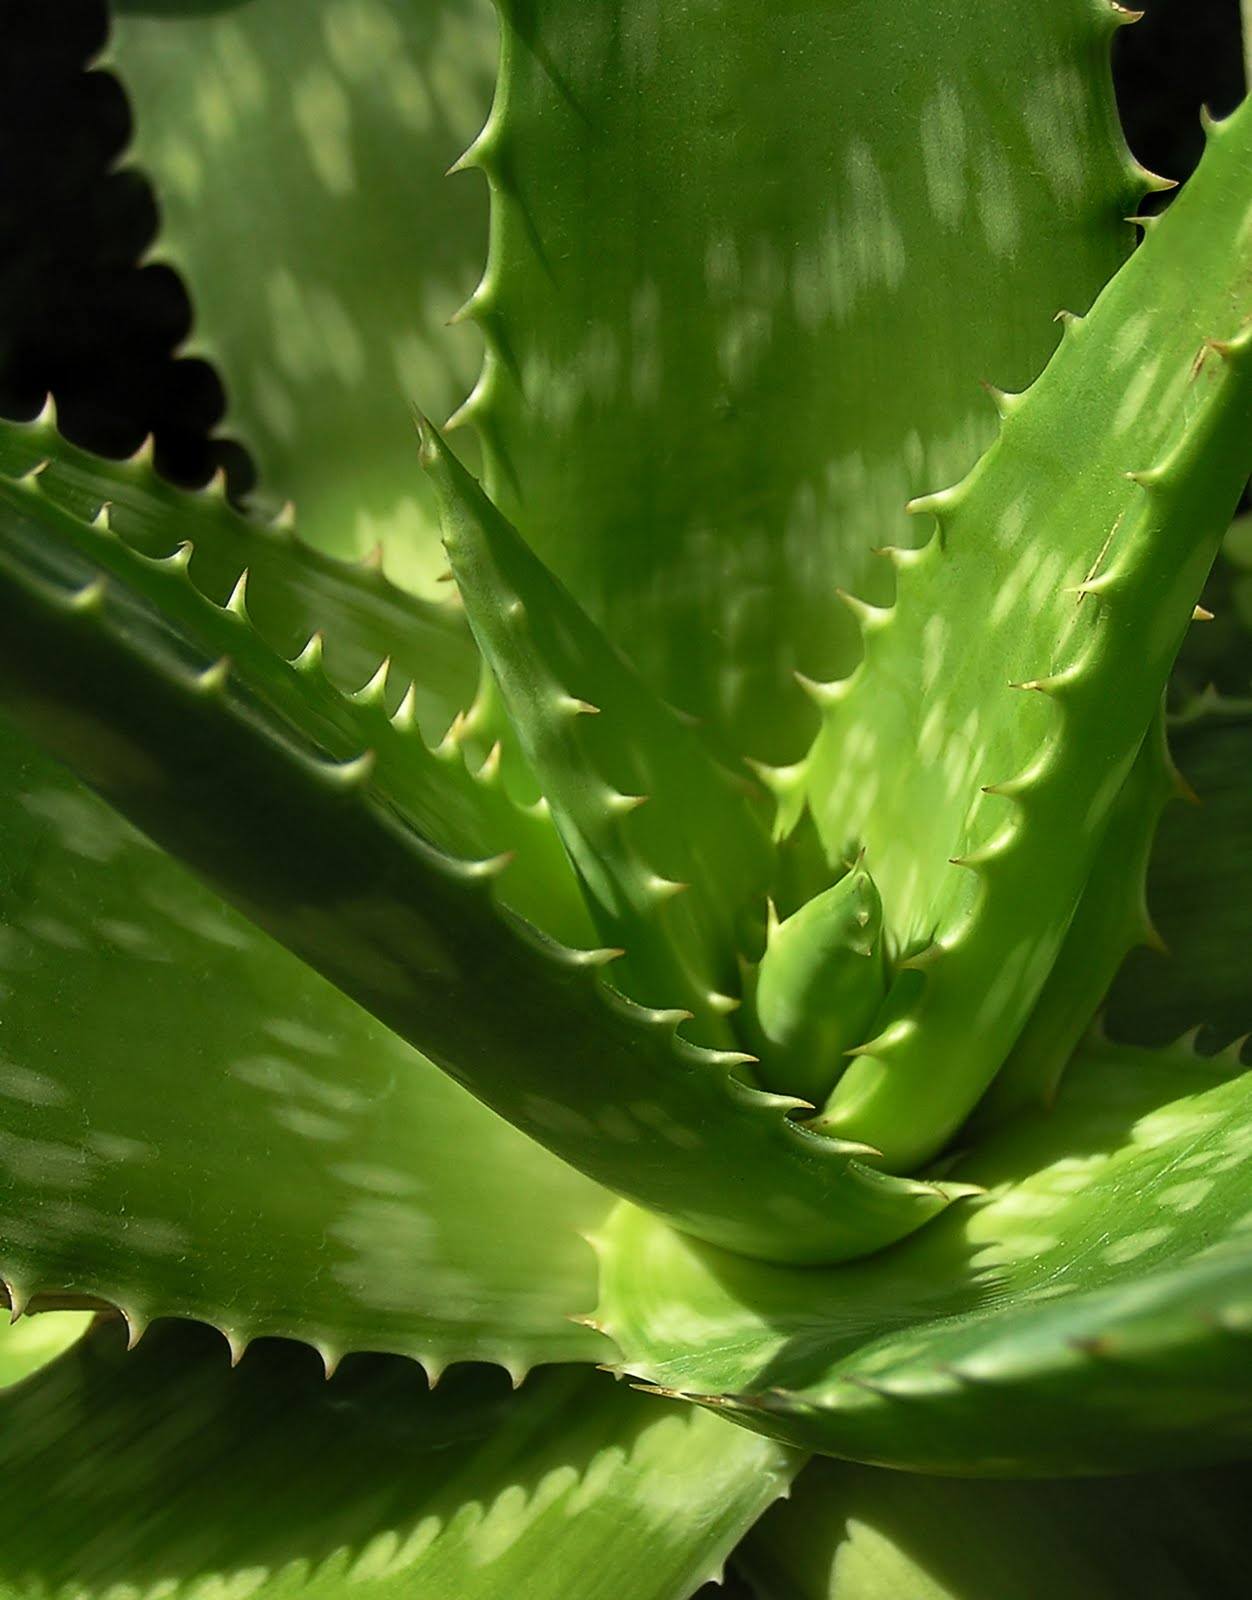 aloe vera arborescens plant 4 6 inch long 2 plant. Black Bedroom Furniture Sets. Home Design Ideas